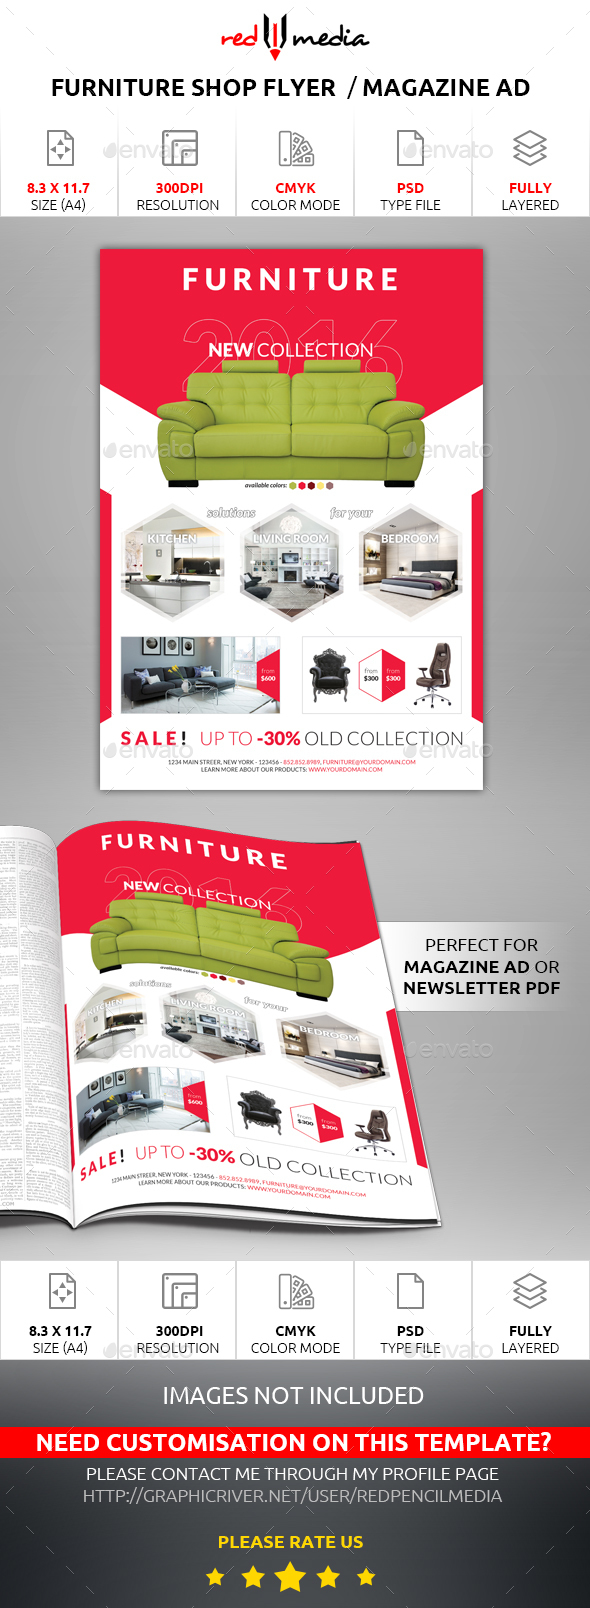 Furniture Shop Flyer / Magazine AD - Commerce Flyers